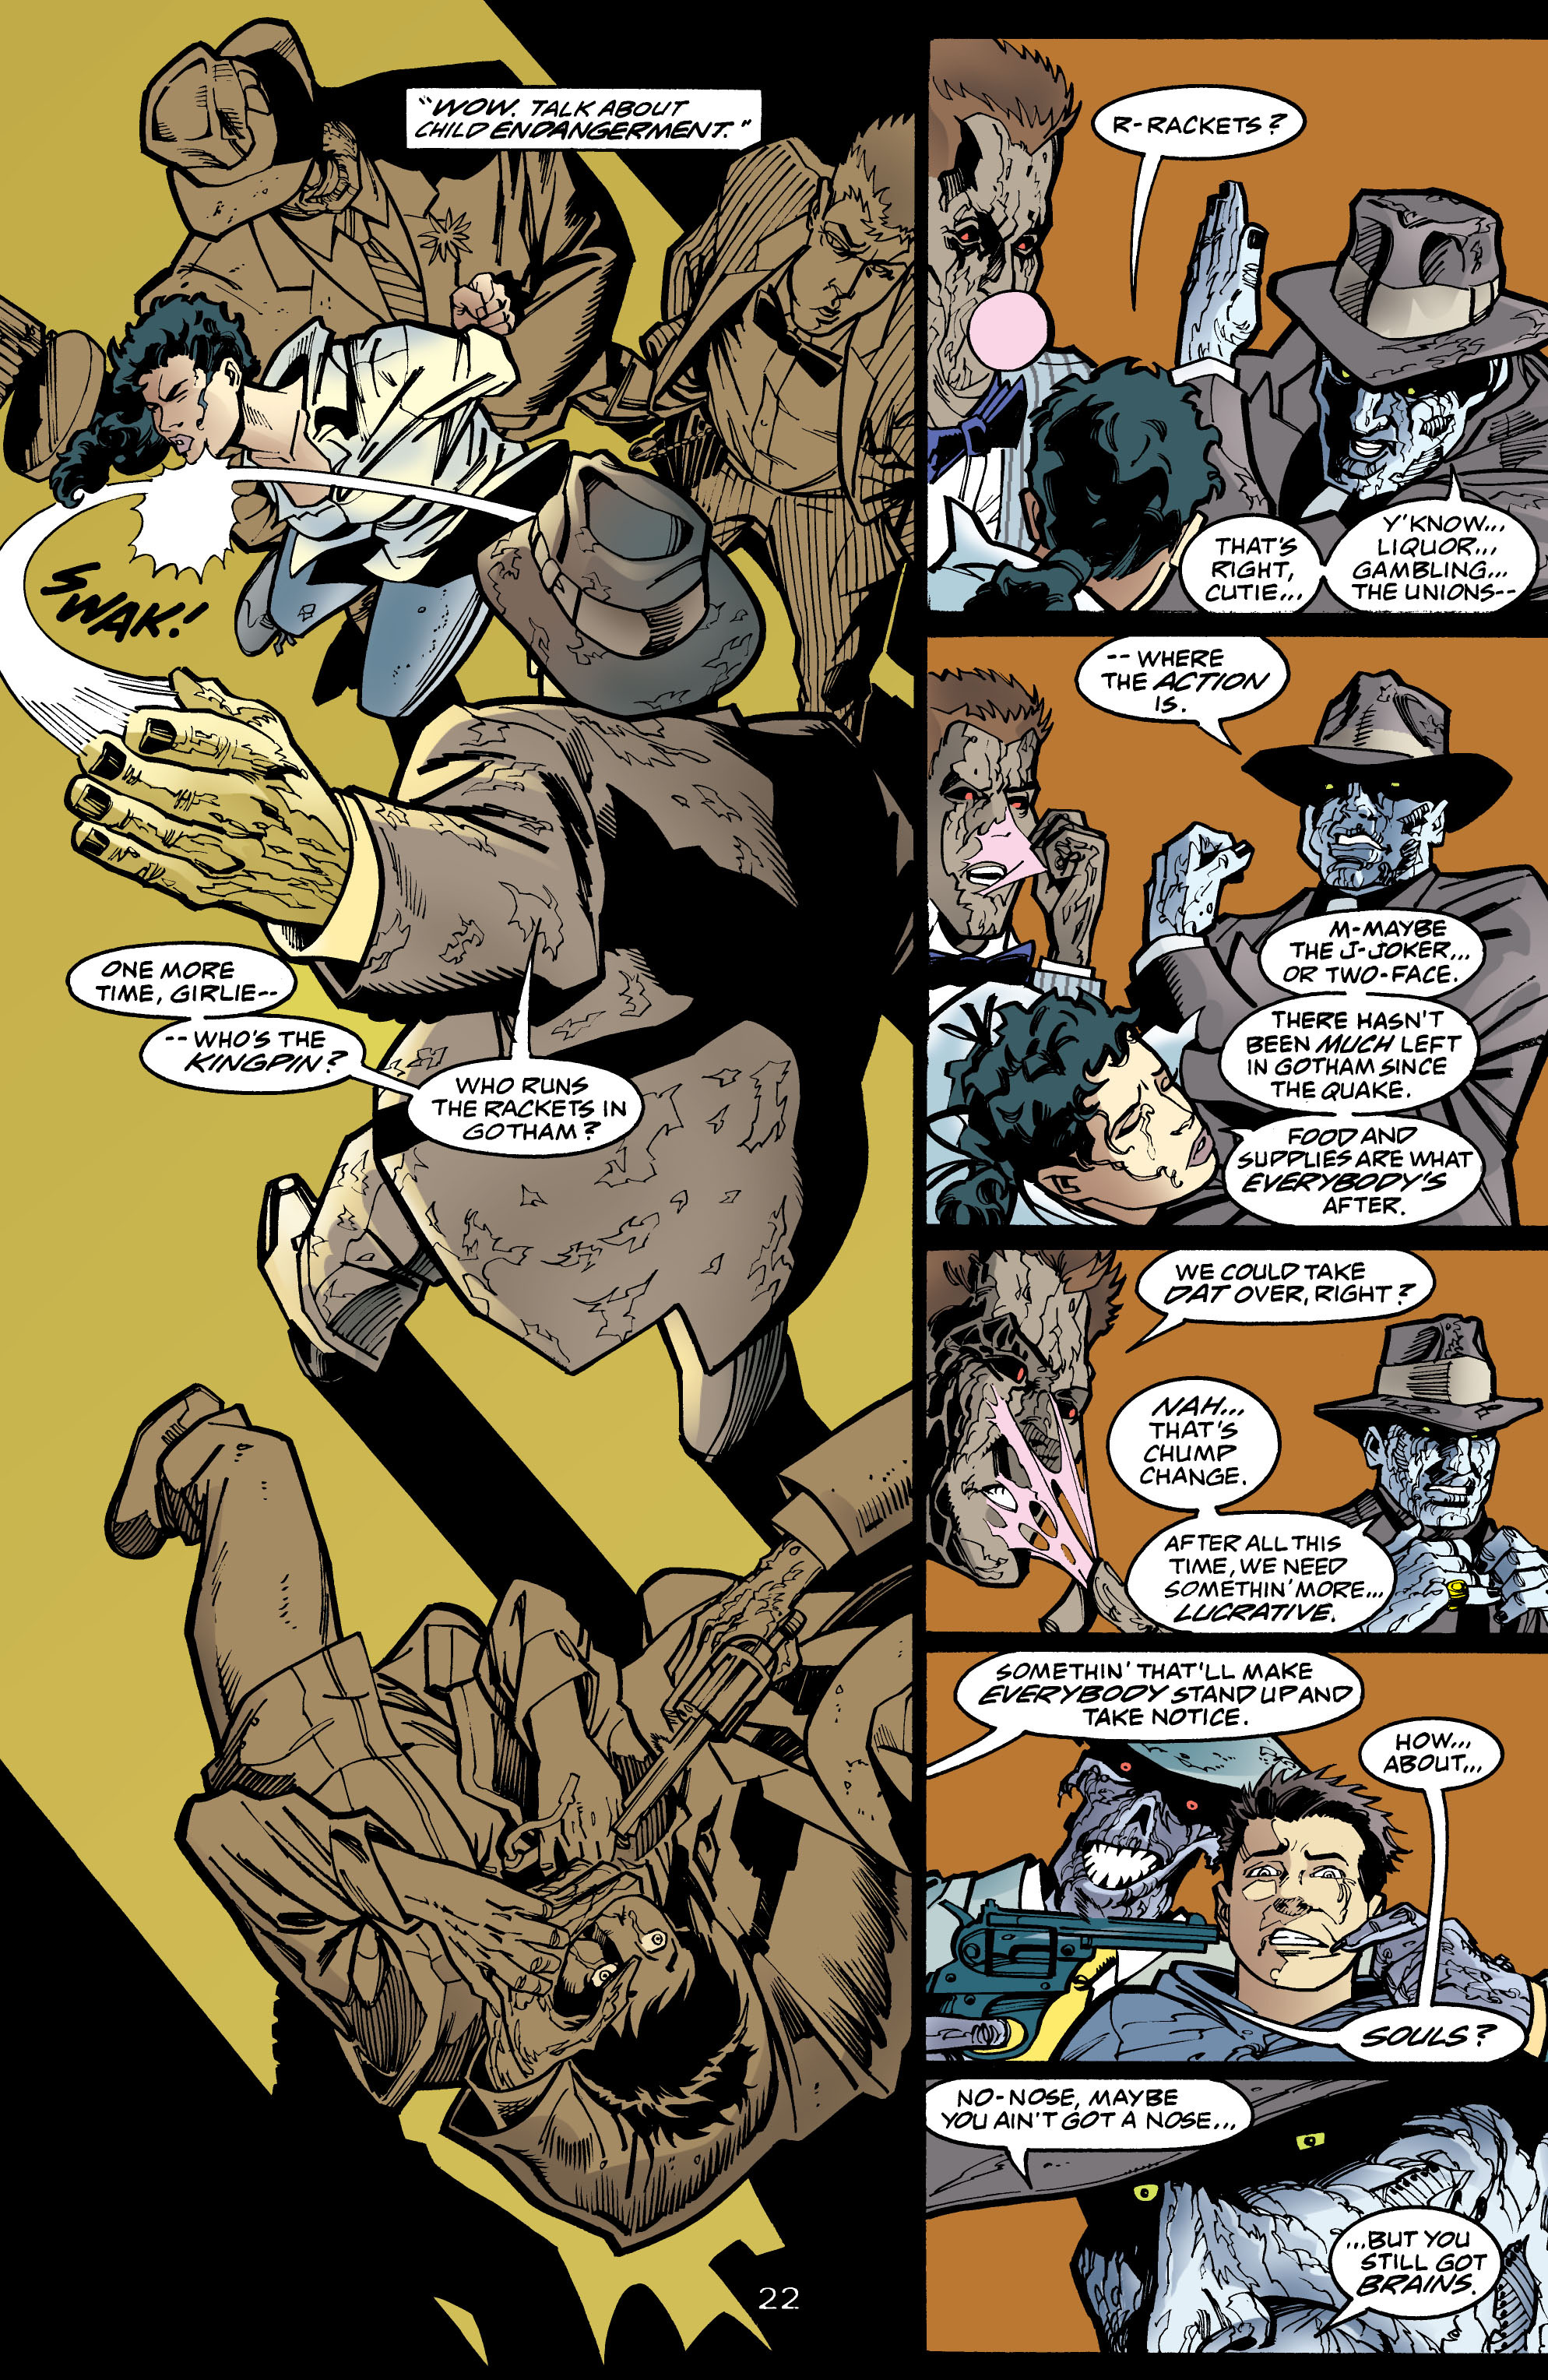 Read online Batman: Day of Judgment comic -  Issue # Full - 23